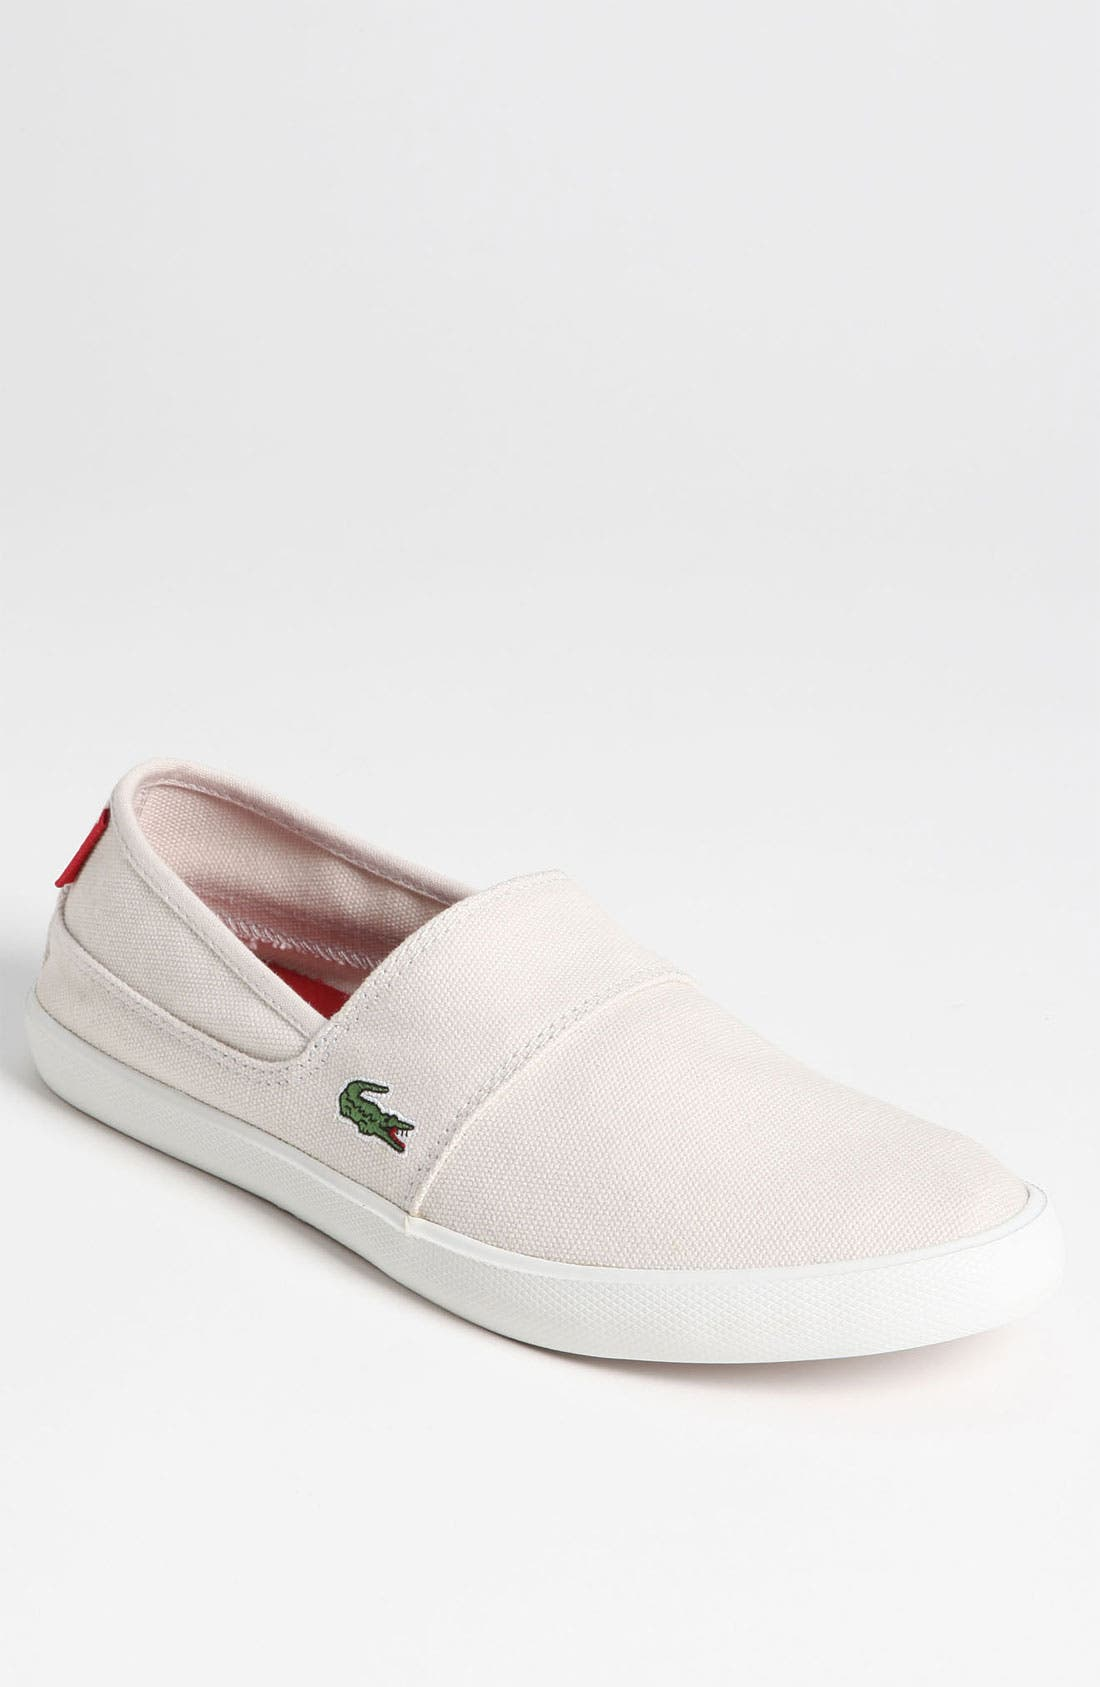 Alternate Image 1 Selected - Lacoste 'Clemente CI' Slip-On Sneaker